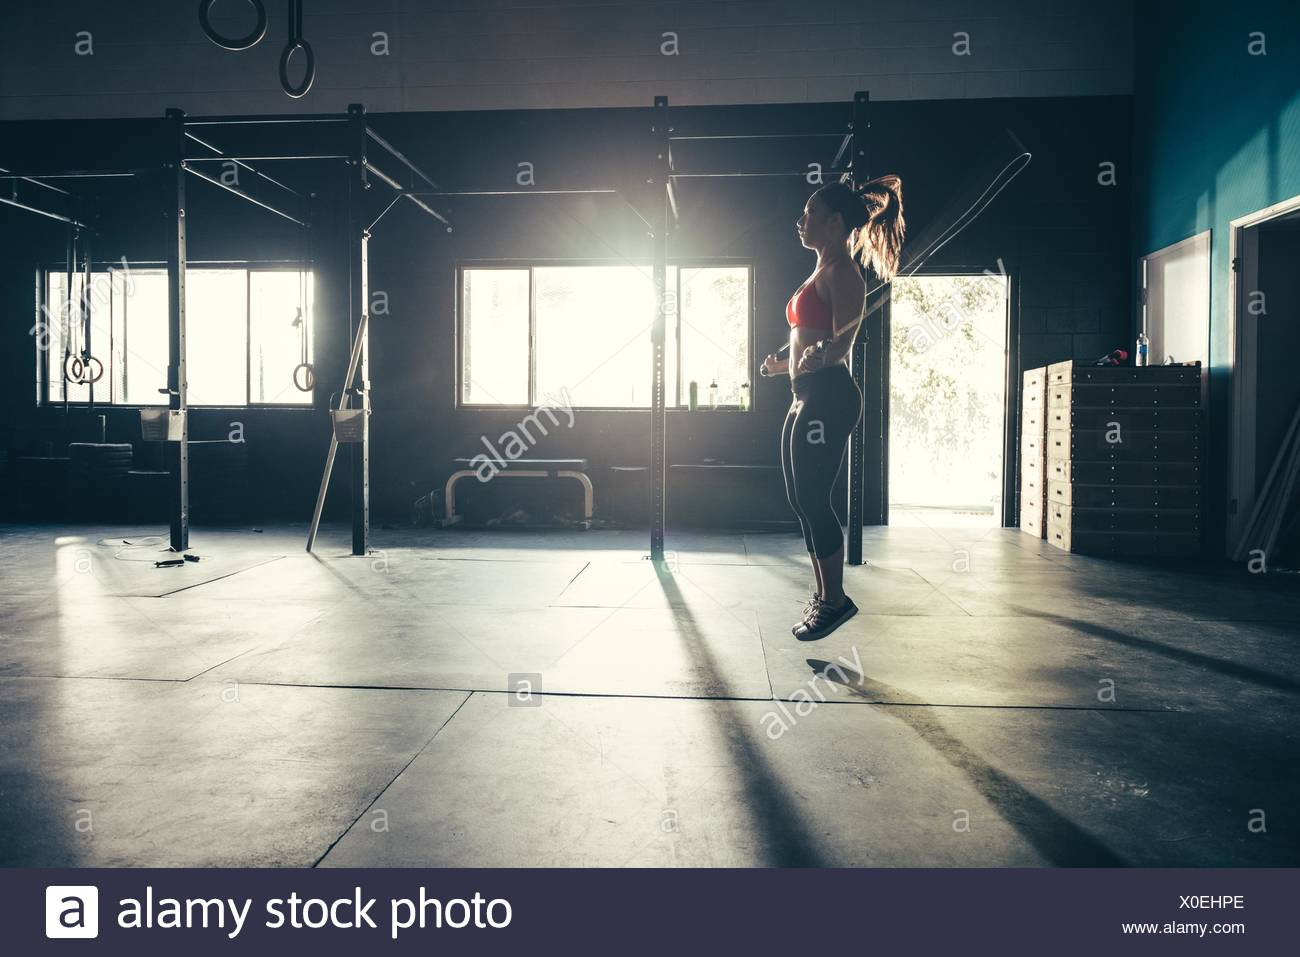 Woman skipping with skipping ropes in gym - Stock Image